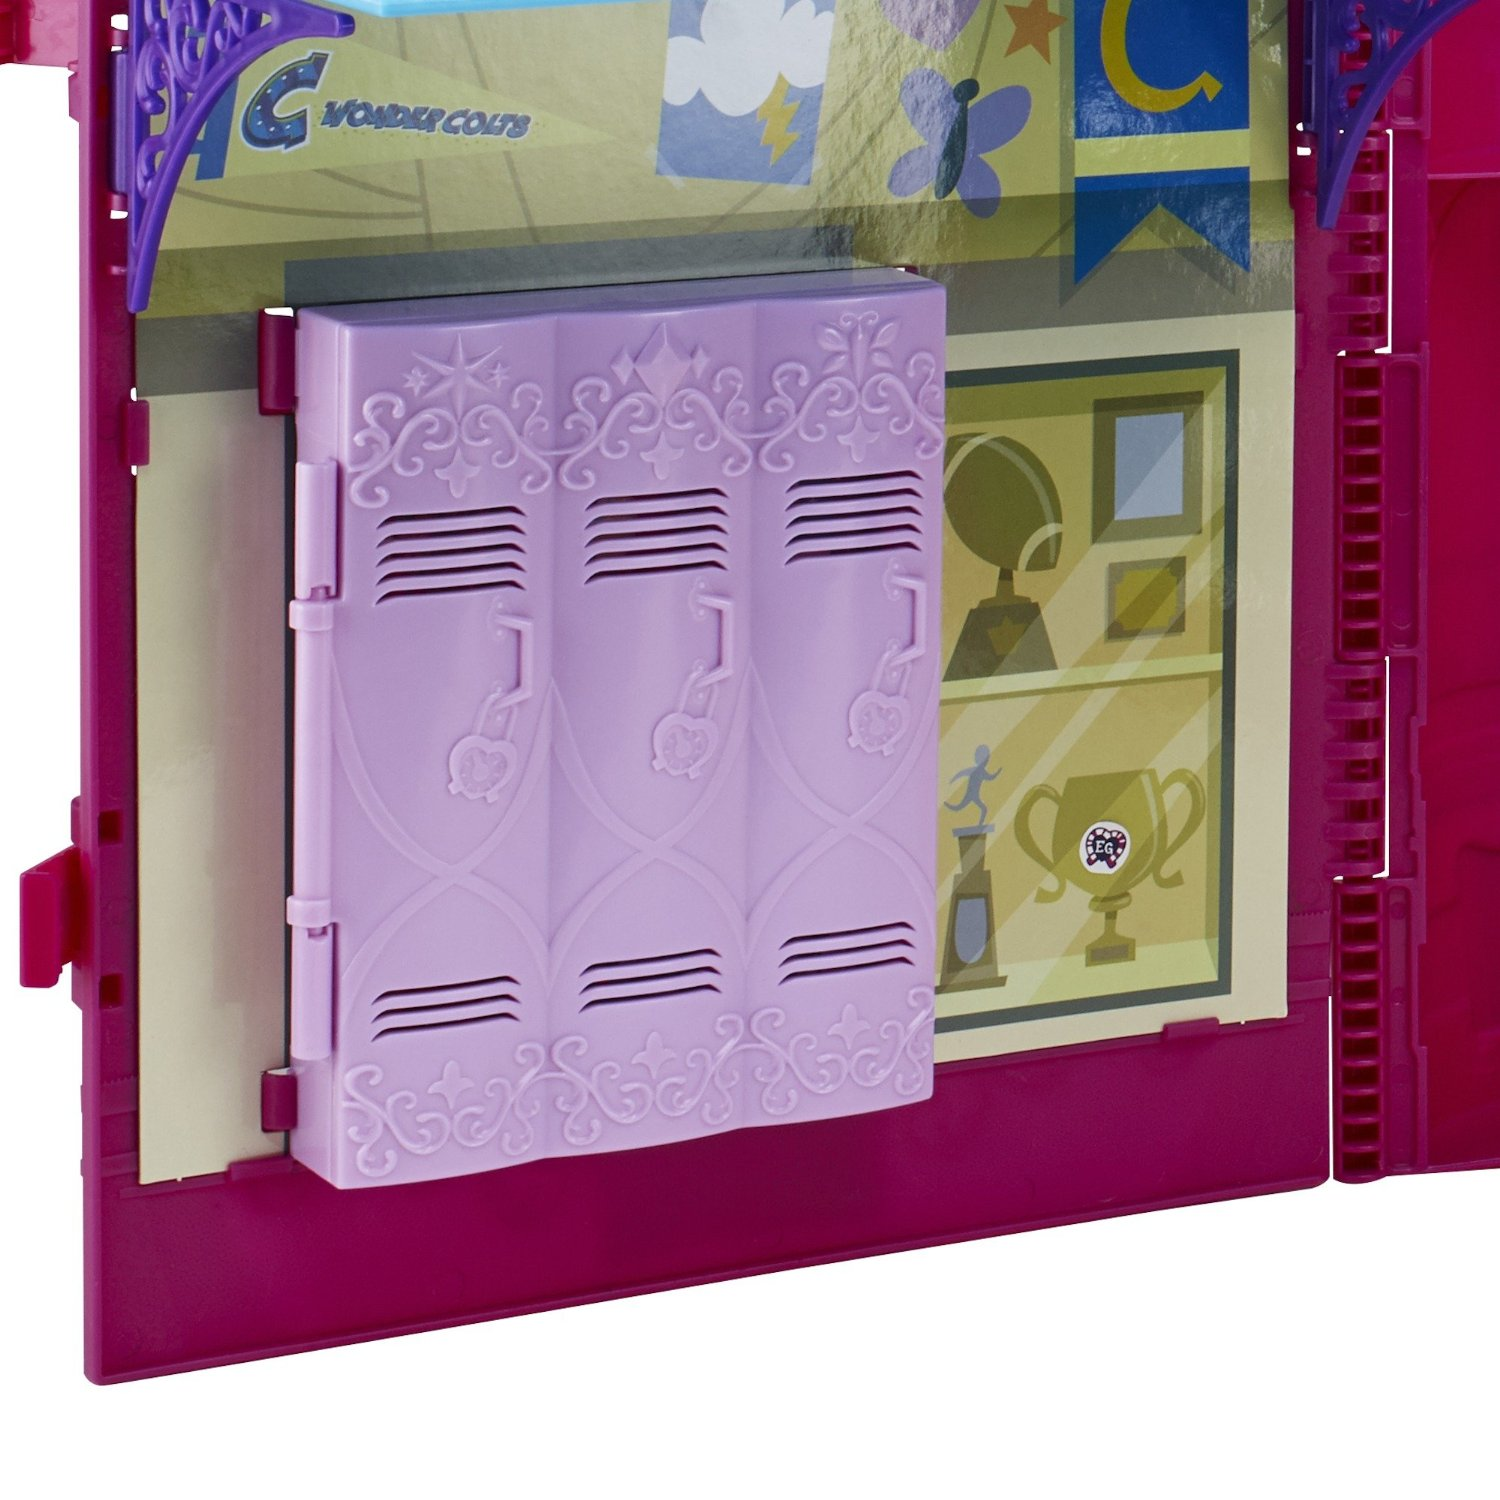 equestria girls canterlot high playset available on amazon